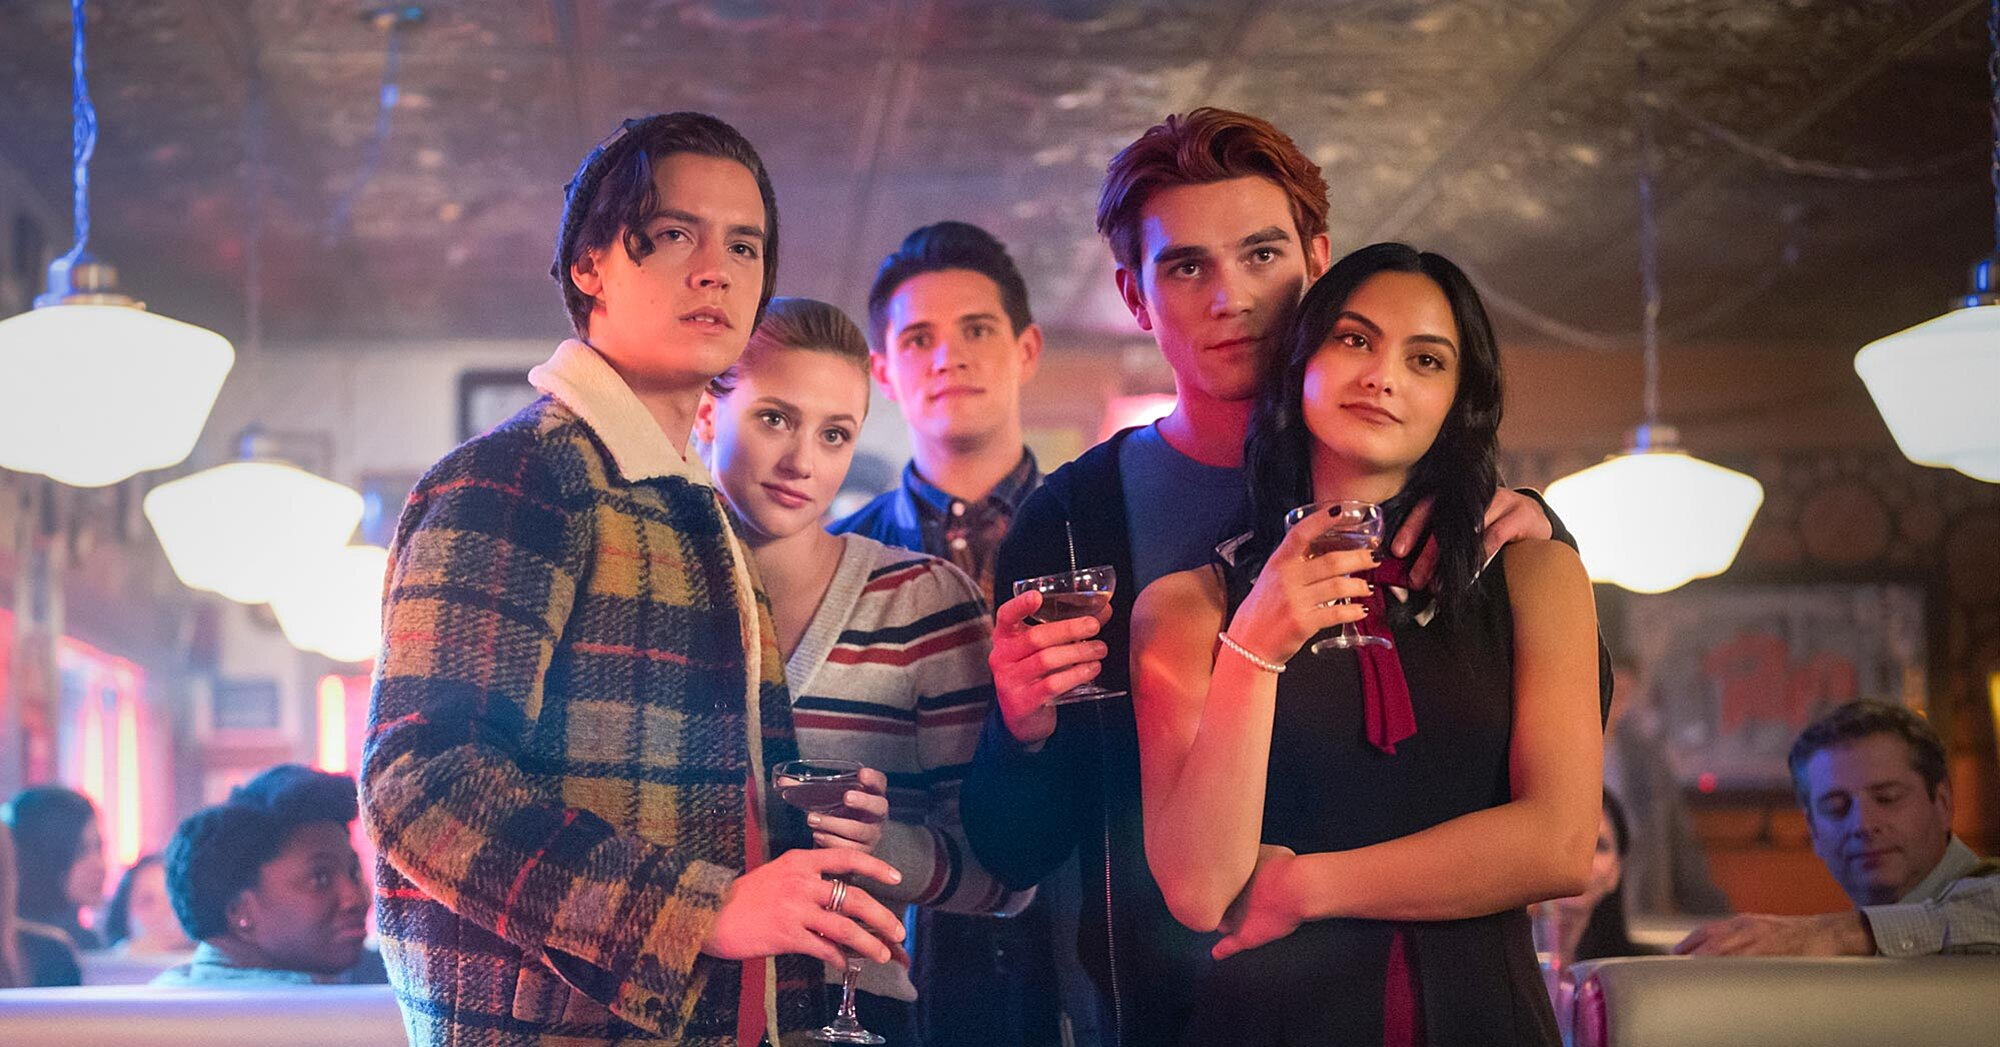 What to Watch on Wednesday: Riverdale wraps up season 4 by 'Killing Mr. Honey'